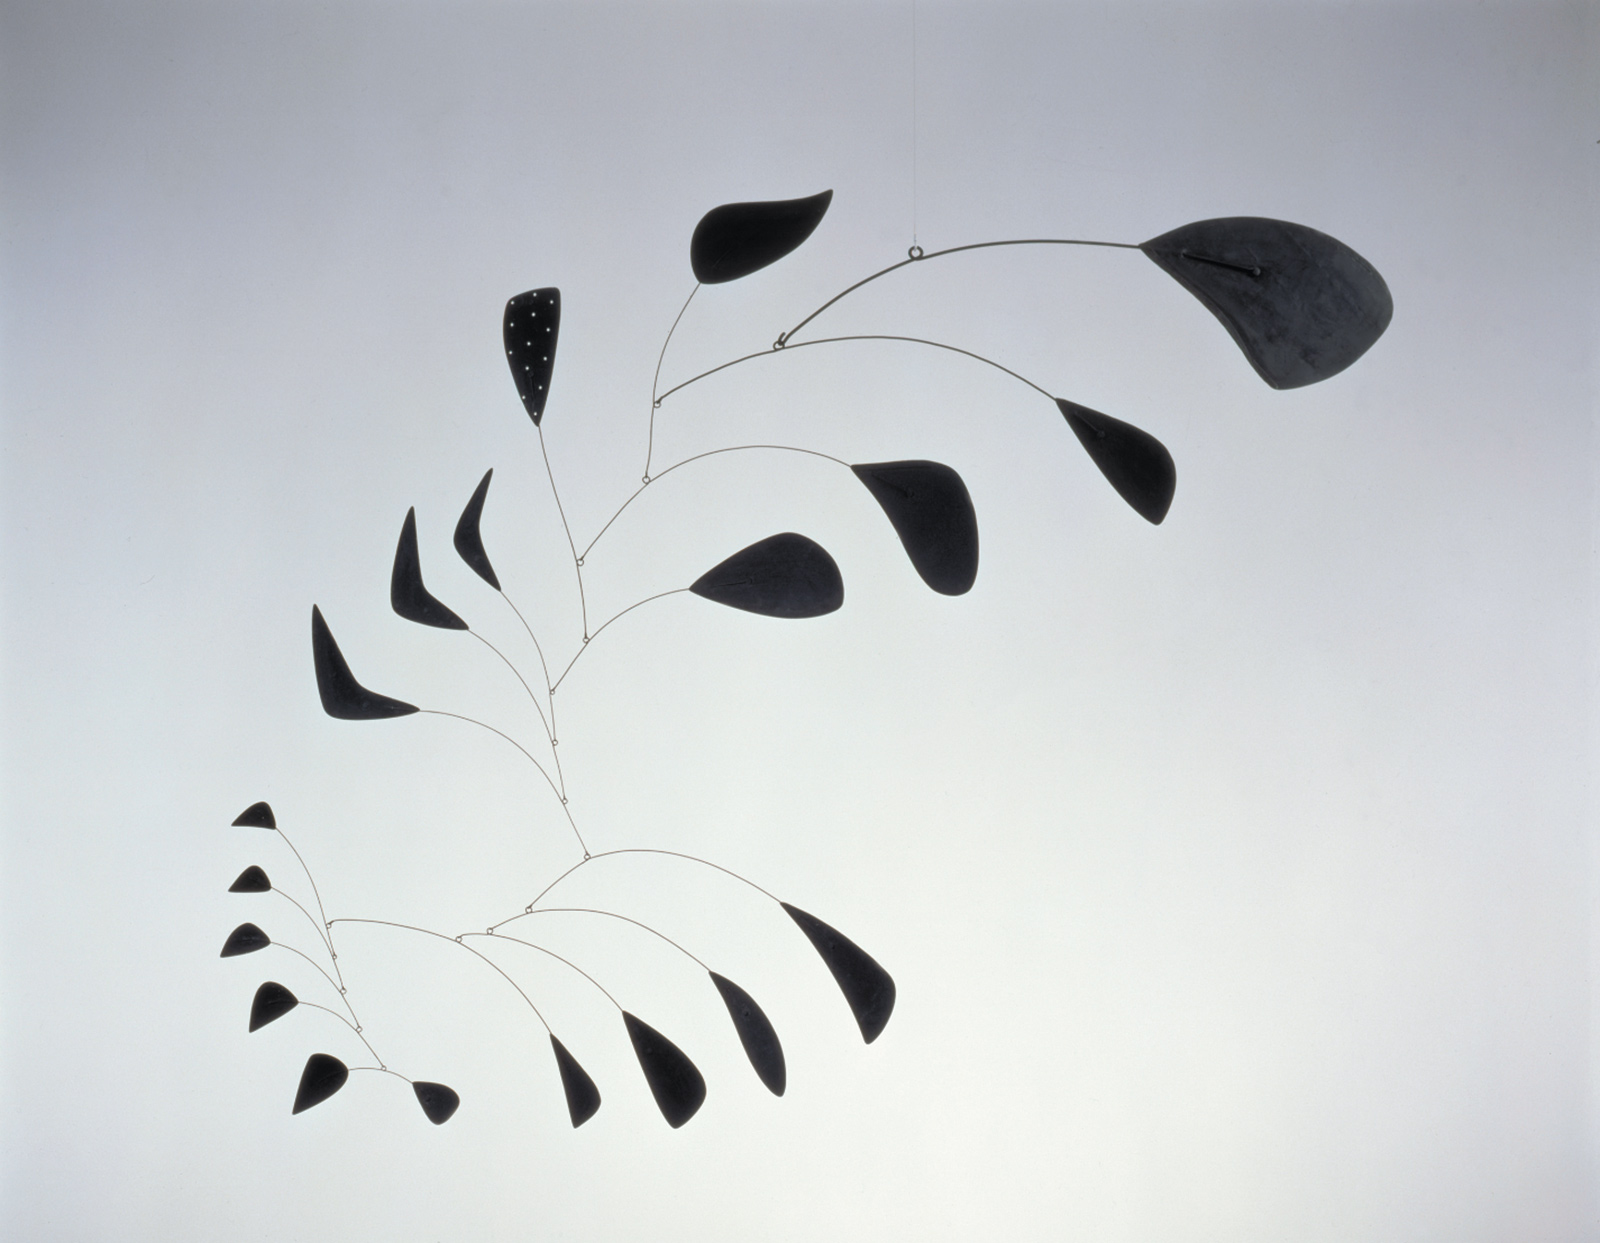 Alexander Calder: Vertical Foliage, sheet metal, wire, and paint, 53 1/2 x 66 inches, 1941